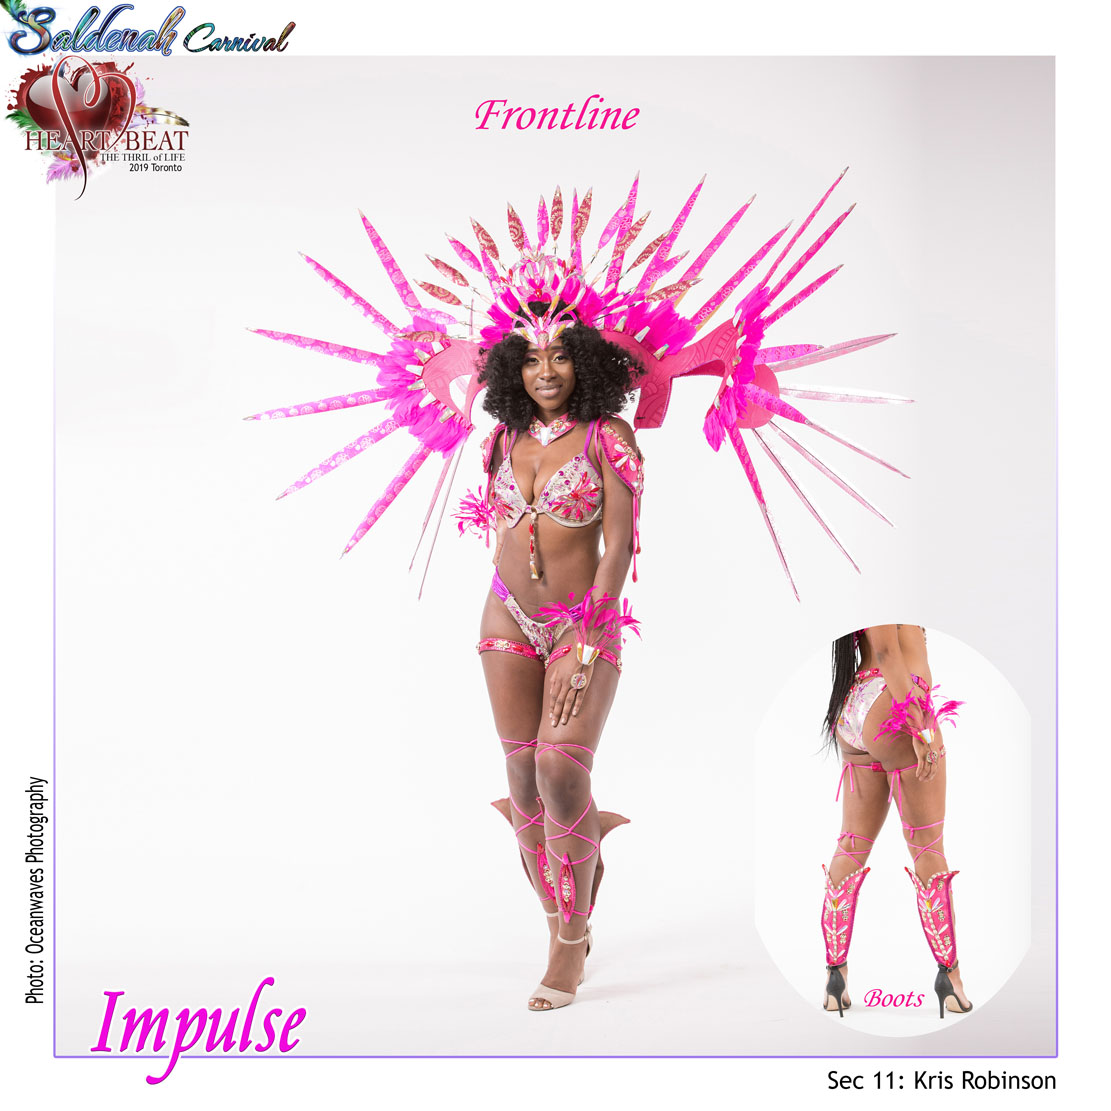 Saldenah Carnival Section 11 Impulse